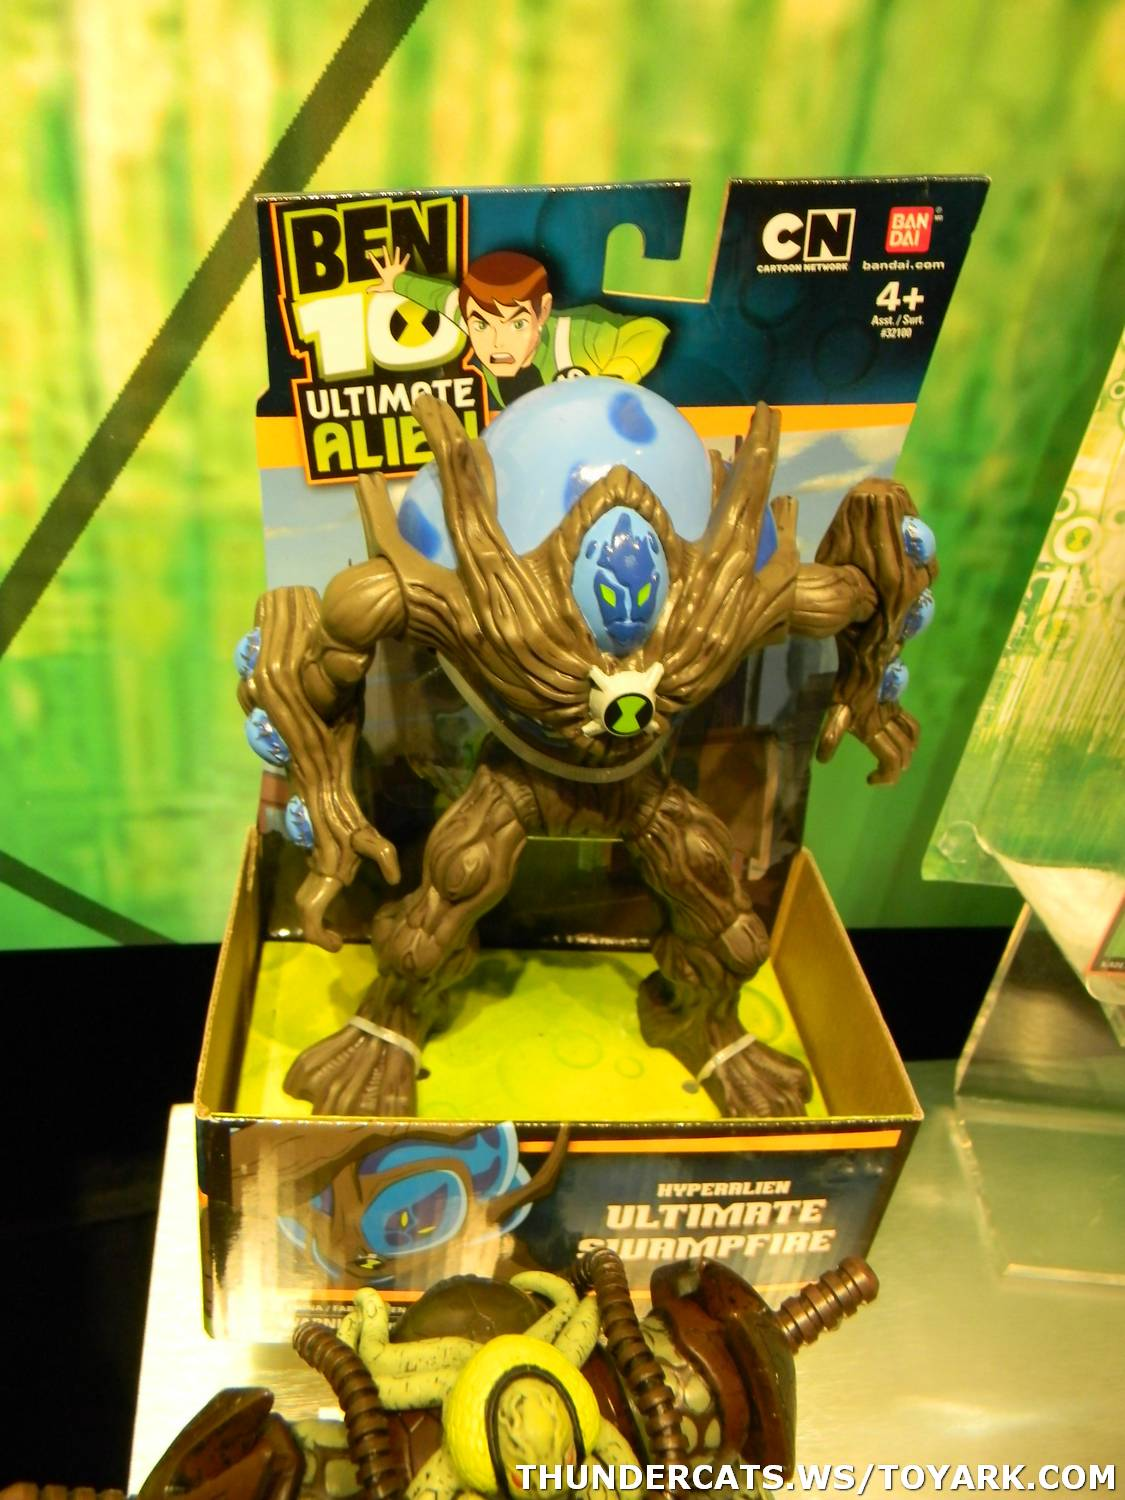 Ben 10 Ultimate Alien Toy Fair 2011 Show Room Images The